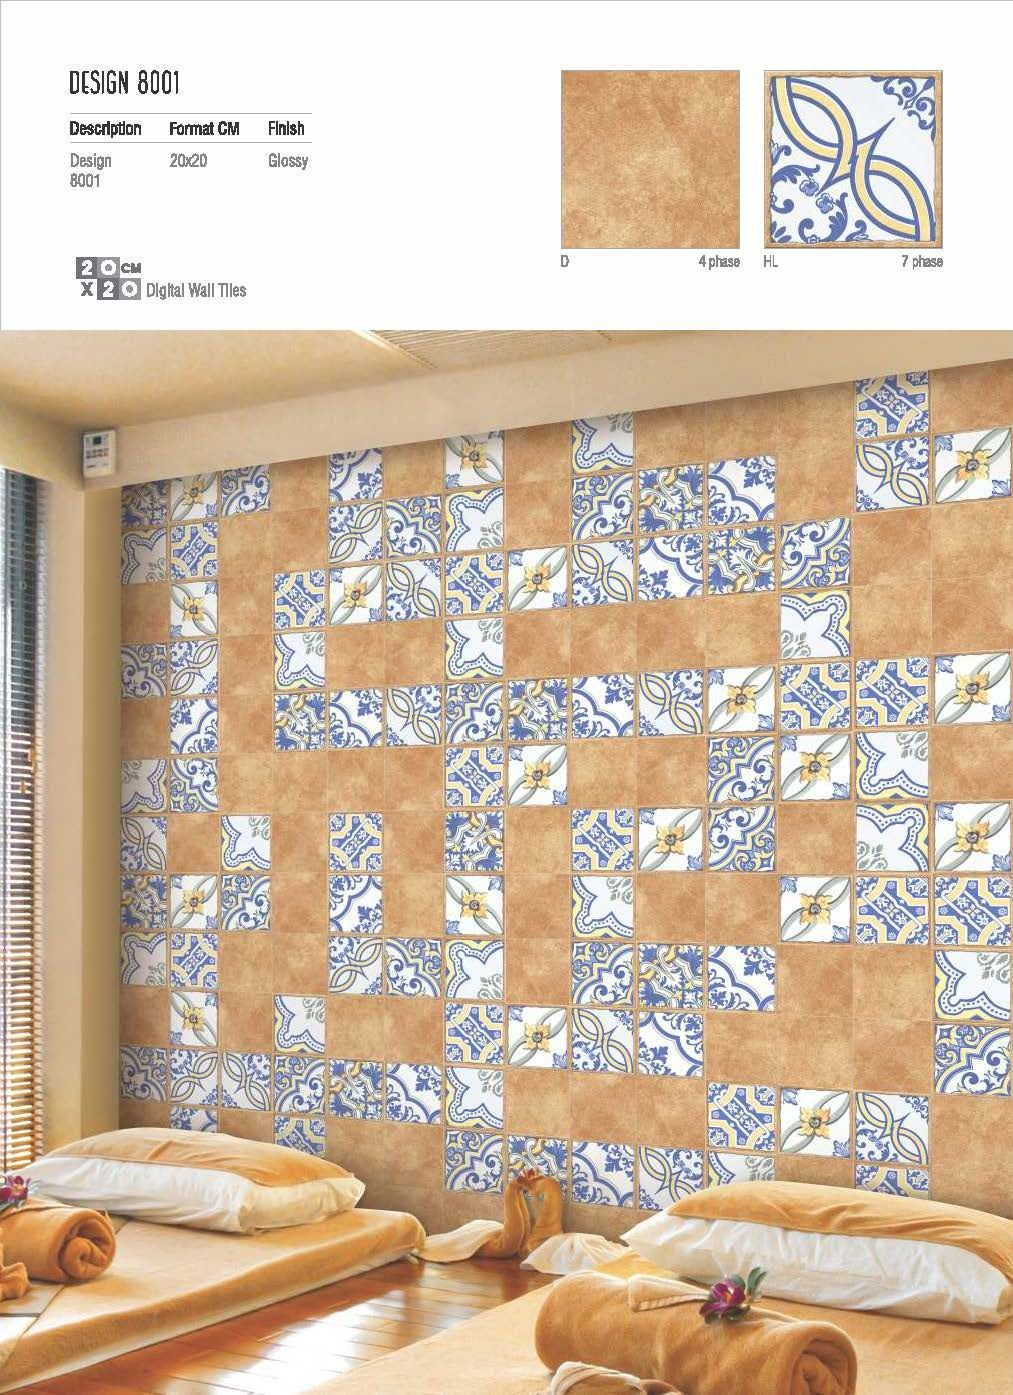 Fullsize Of International Wholesale Tile